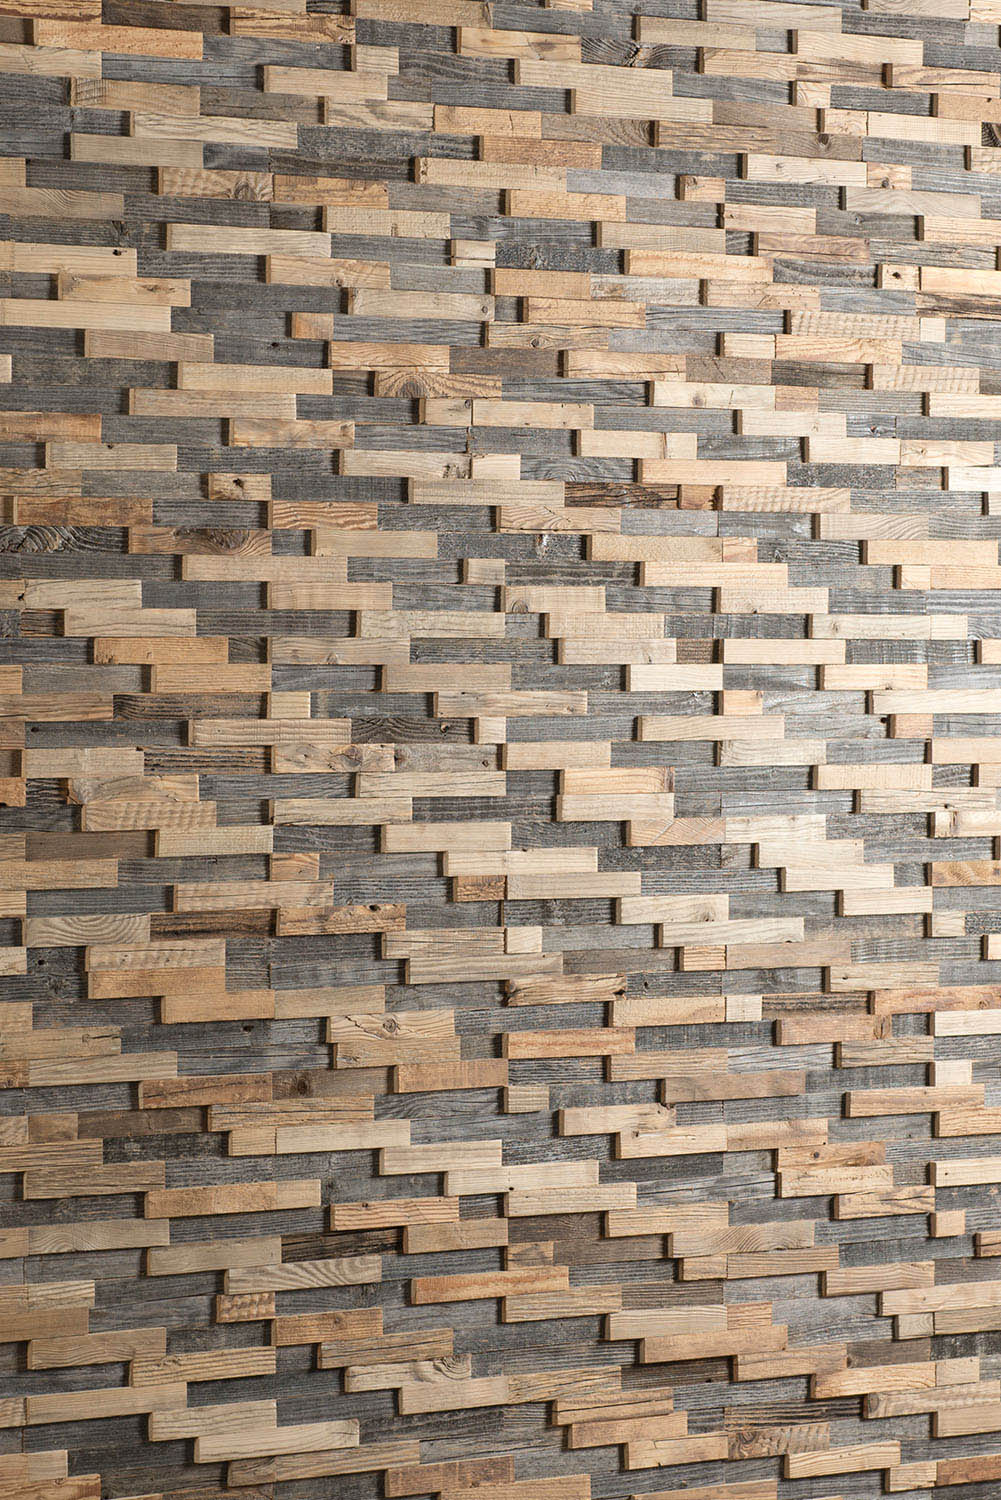 3D wall panel made from wood